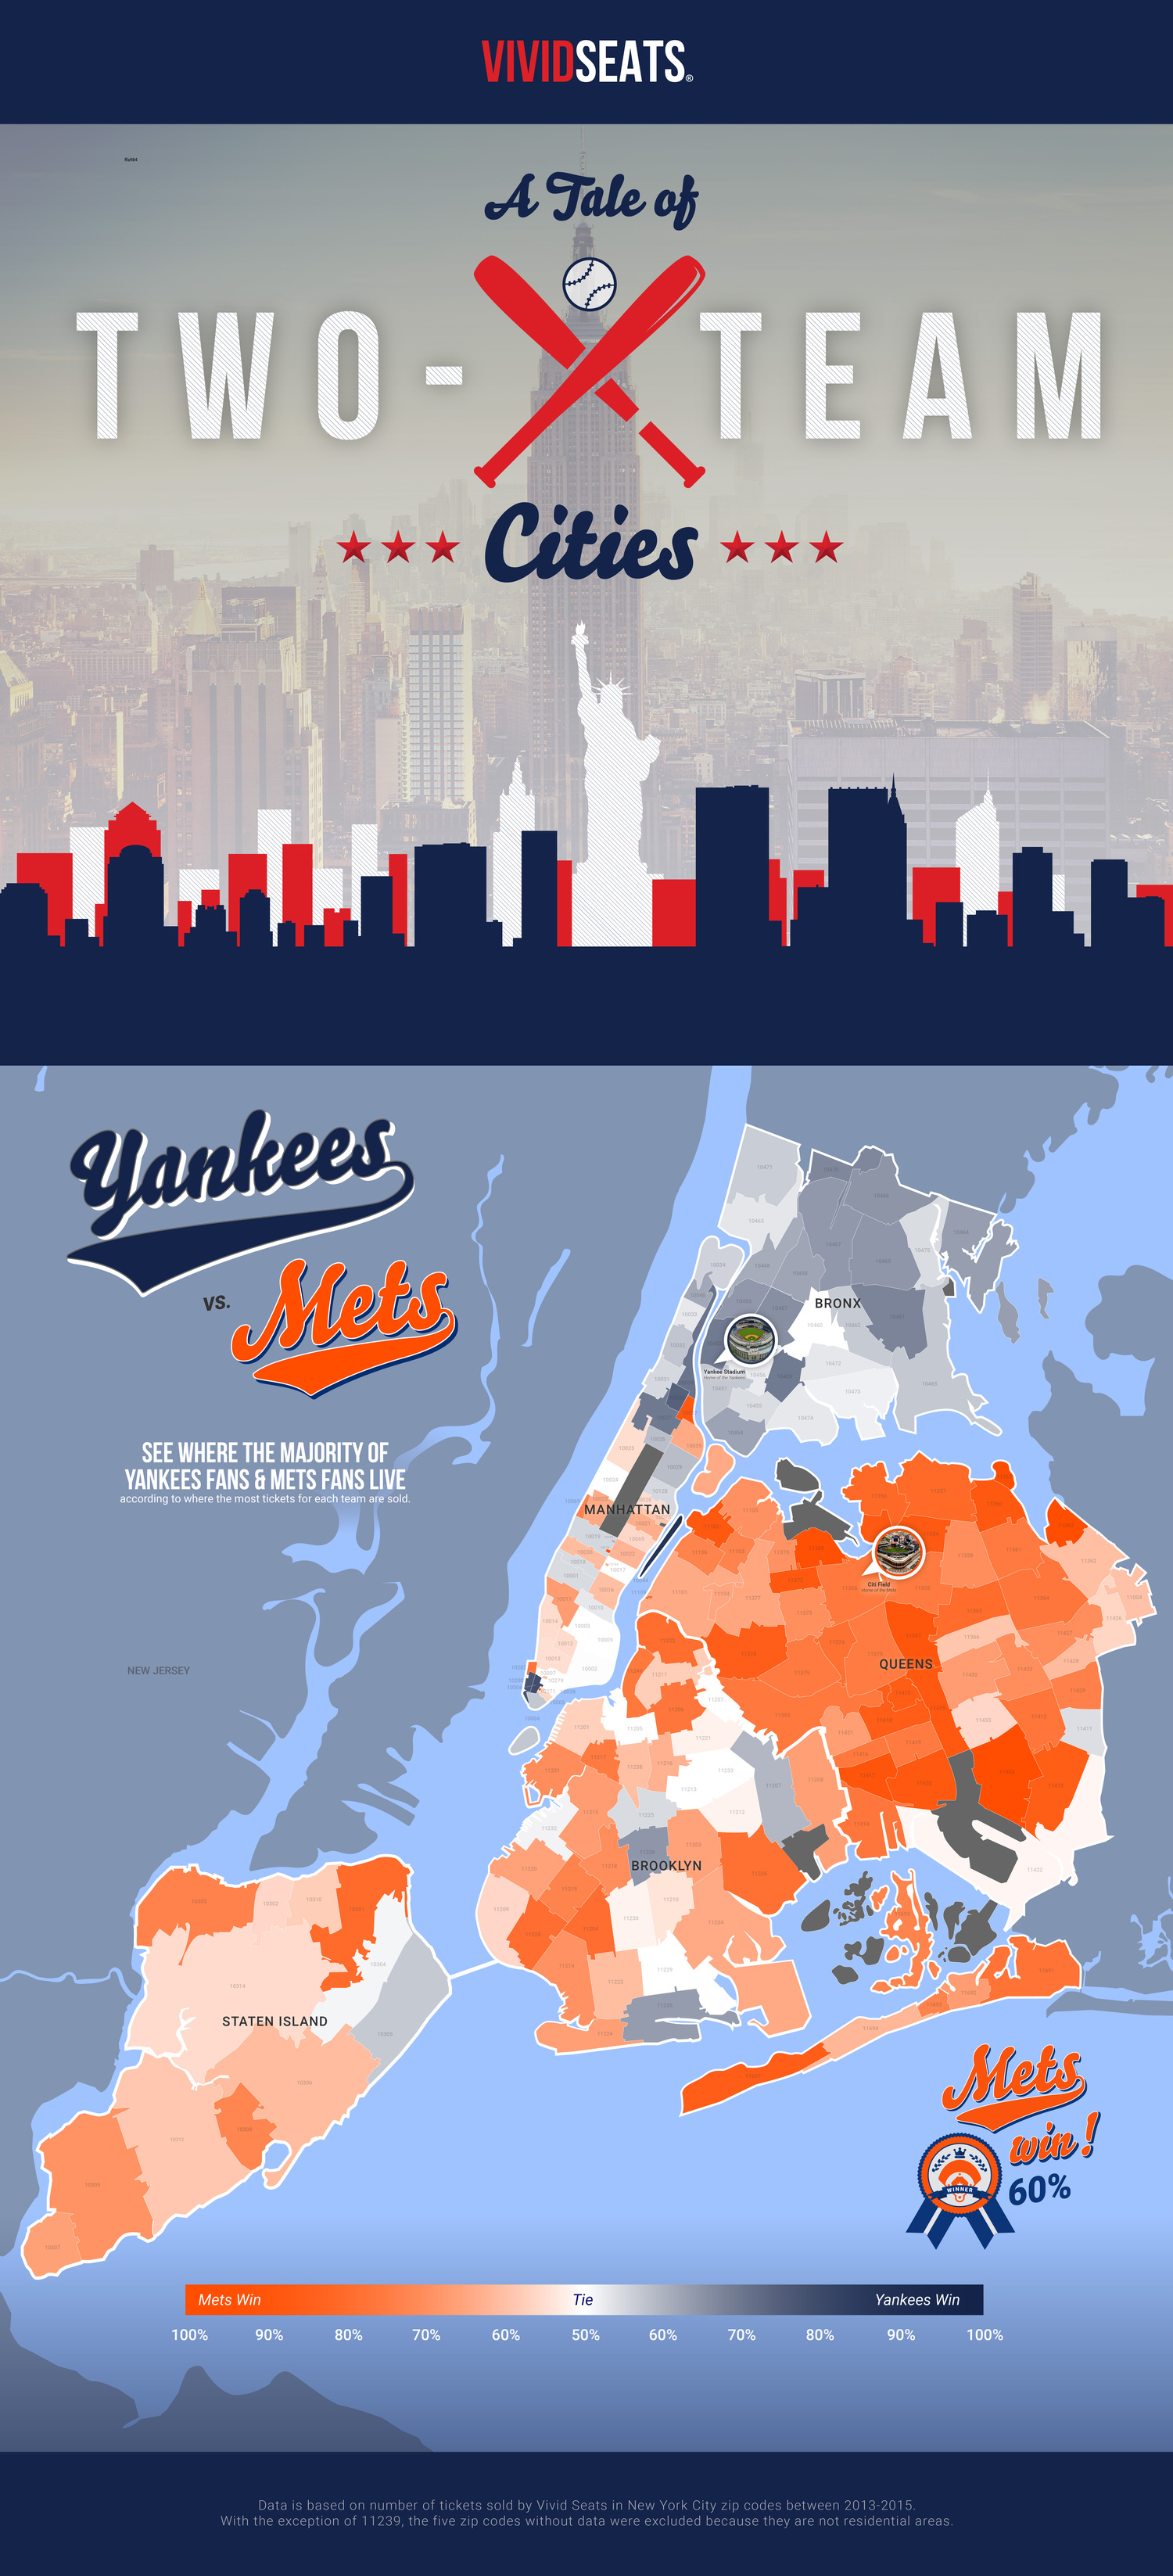 New York City Yankees Fans vs Mets Fans